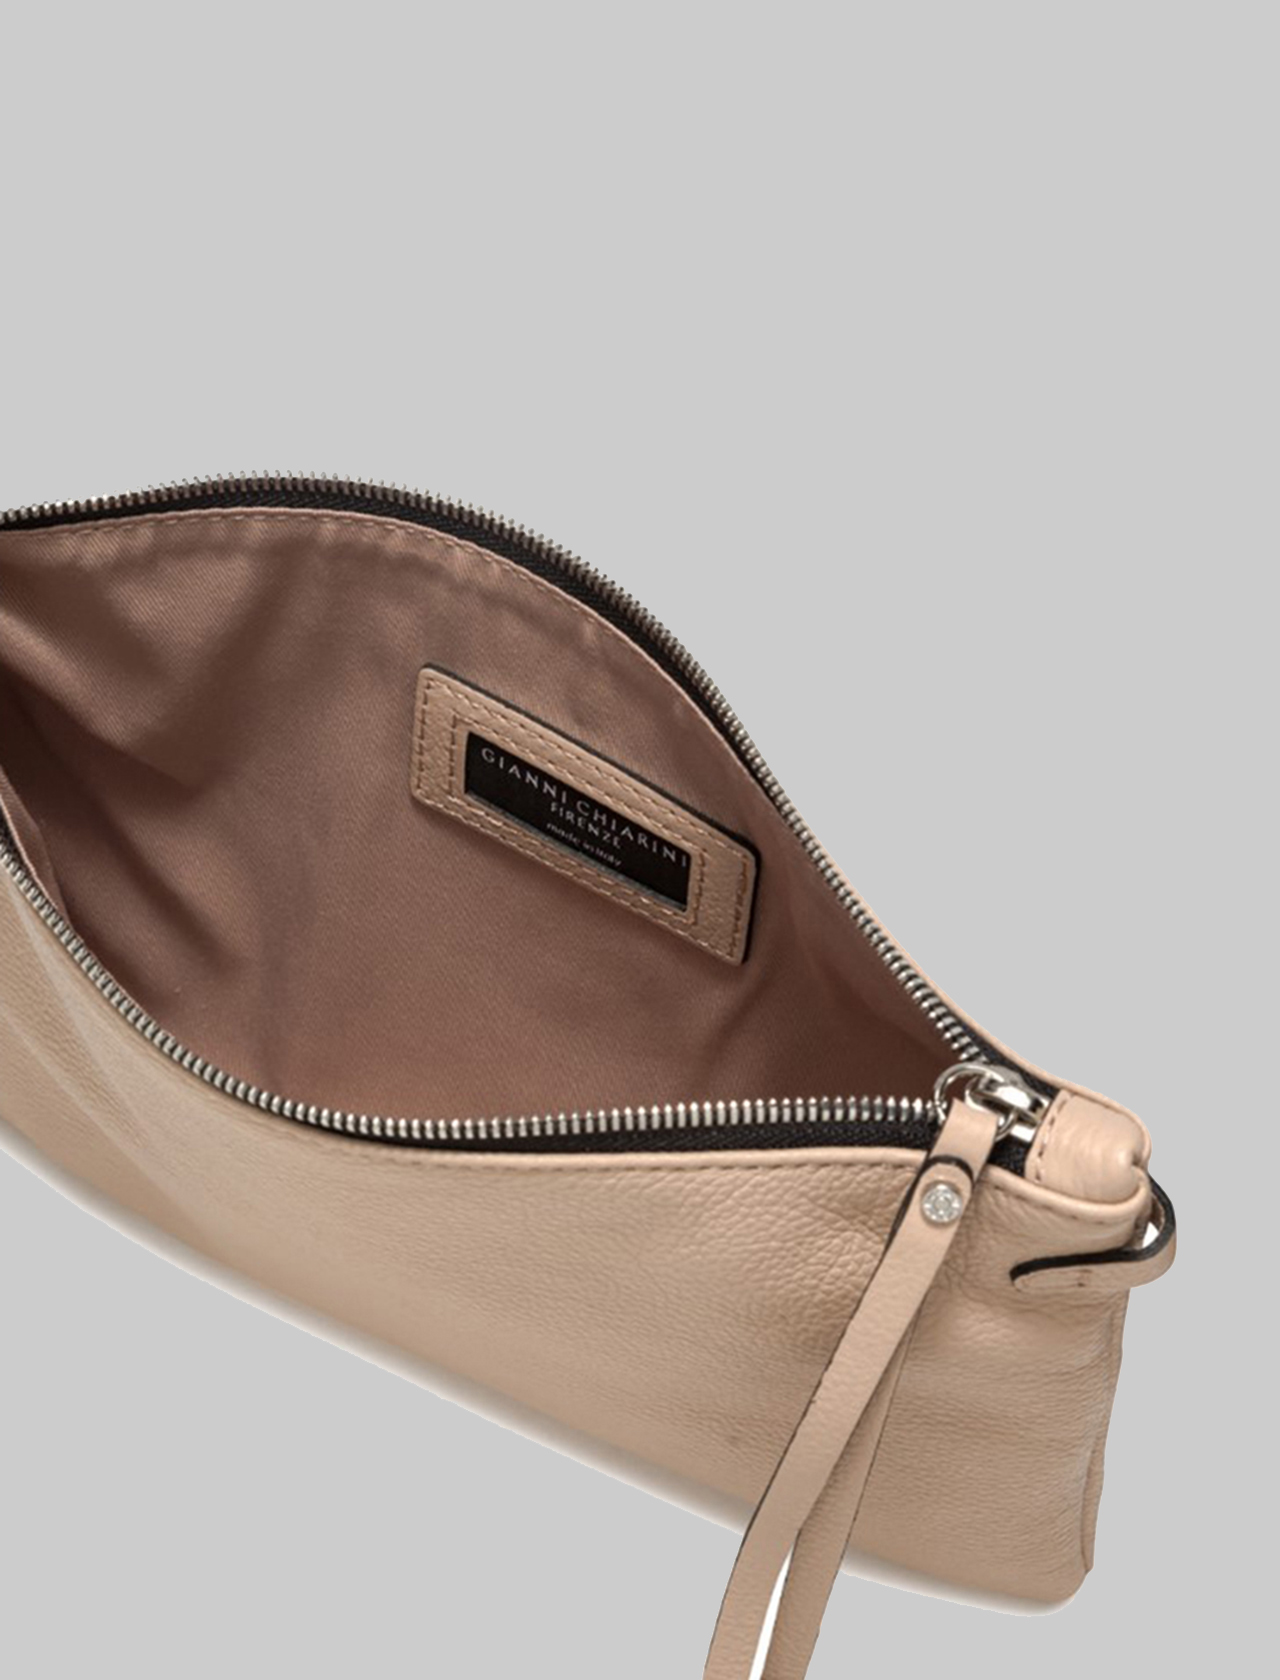 Hermy large women's clutch in beige leather with handle and adjustable and removable shoulder strap Gianni Chiarini | Bags and backpacks | BS369511706